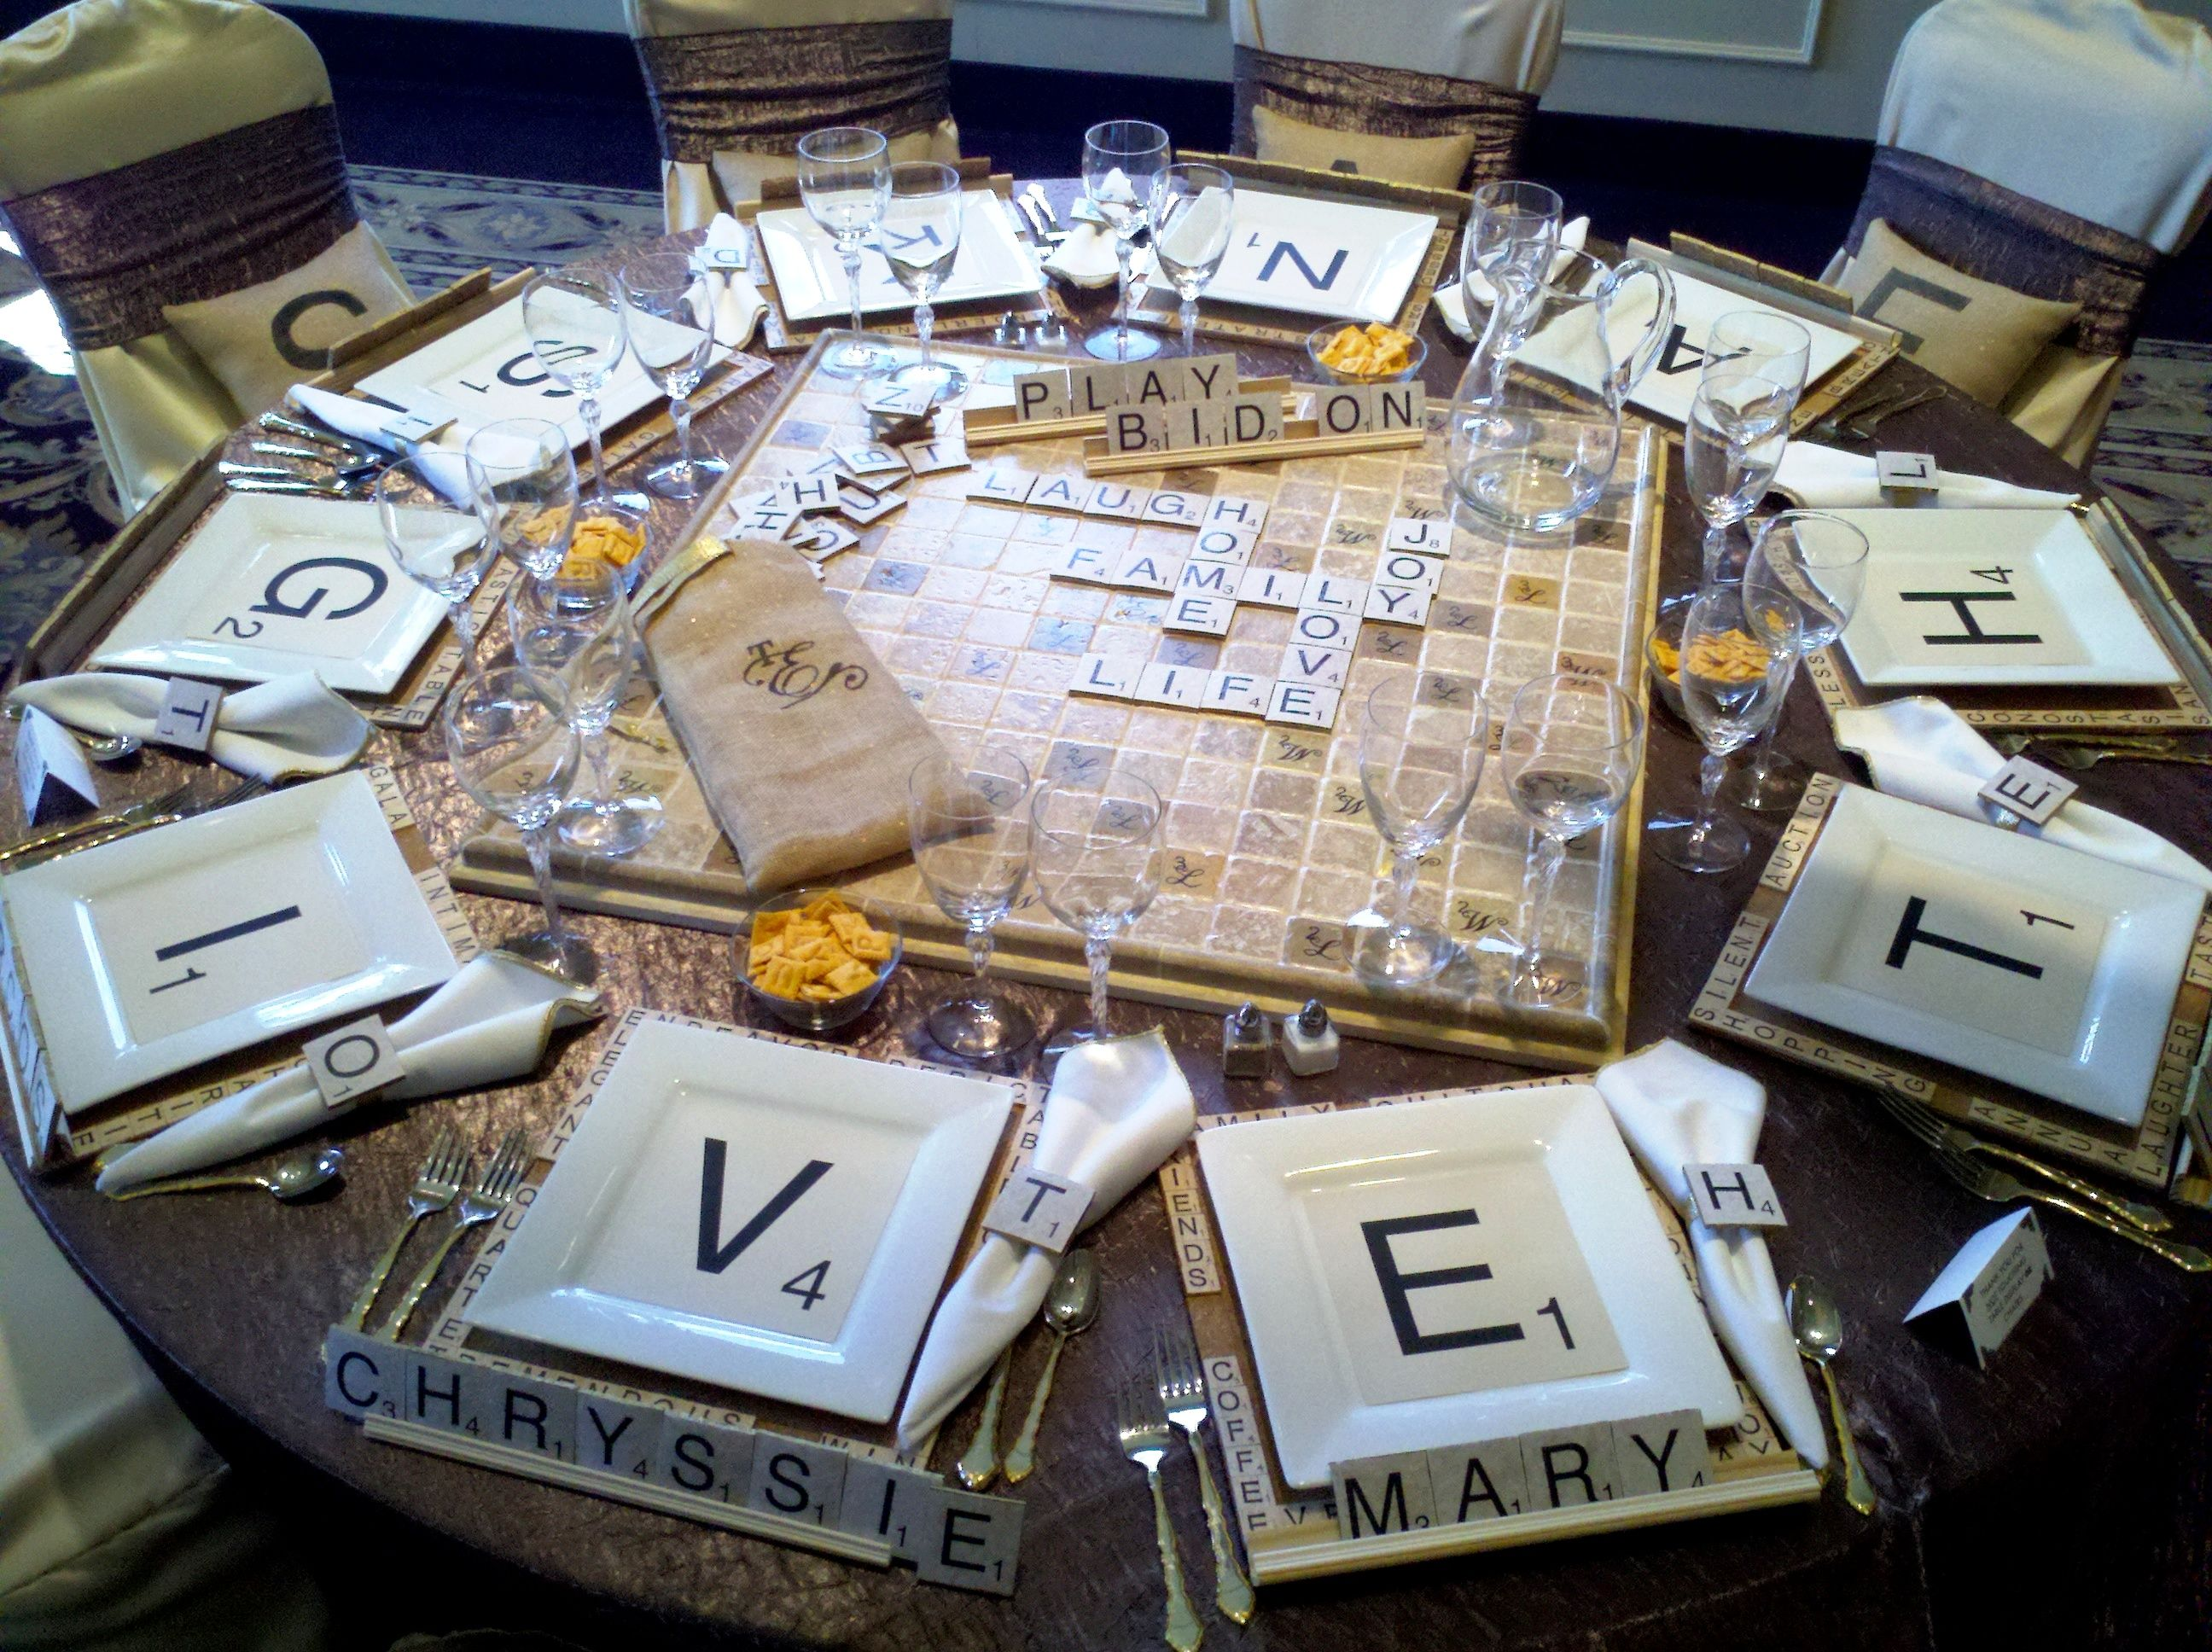 Table Top Decor With A Scrabble Theme This Would Be So Much Fun For A Dinner Party Elisad Com Game Night Parties Game Night Decorations Board Game Party